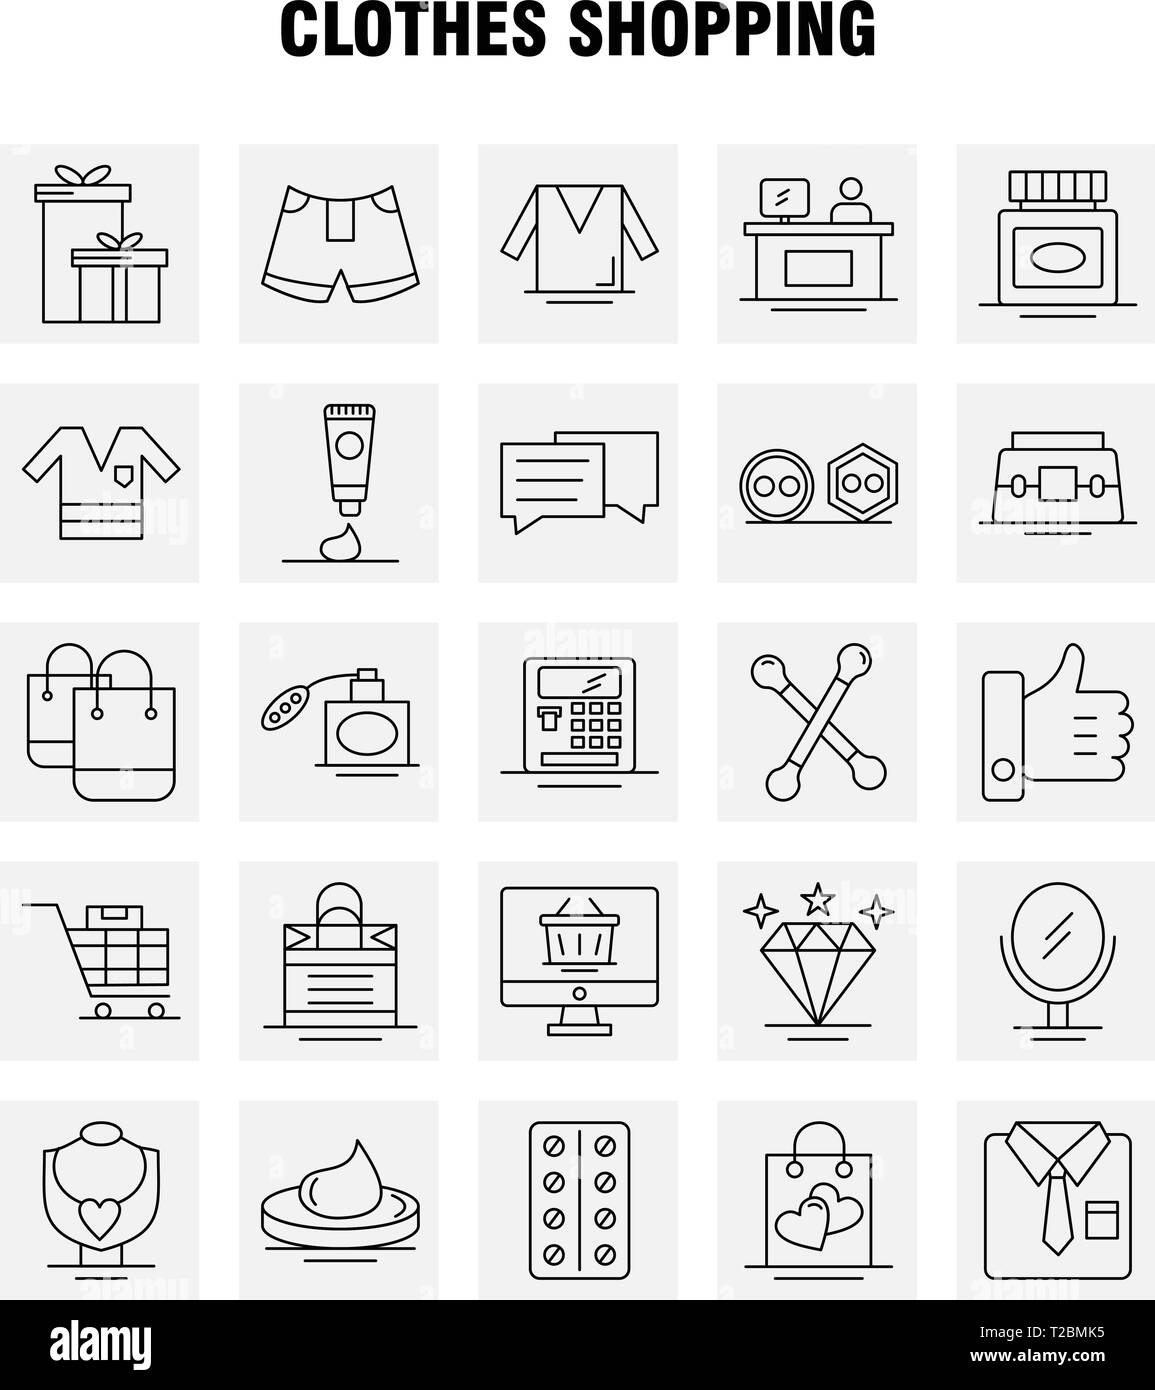 Clothes Shopping Line Icon for Web, Print and Mobile UX/UI Kit. Such as: Shirt, Clothes, Fold, Folding, Dress, Beauty, Cosmetic, Cream, Pictogram Pack - Stock Image